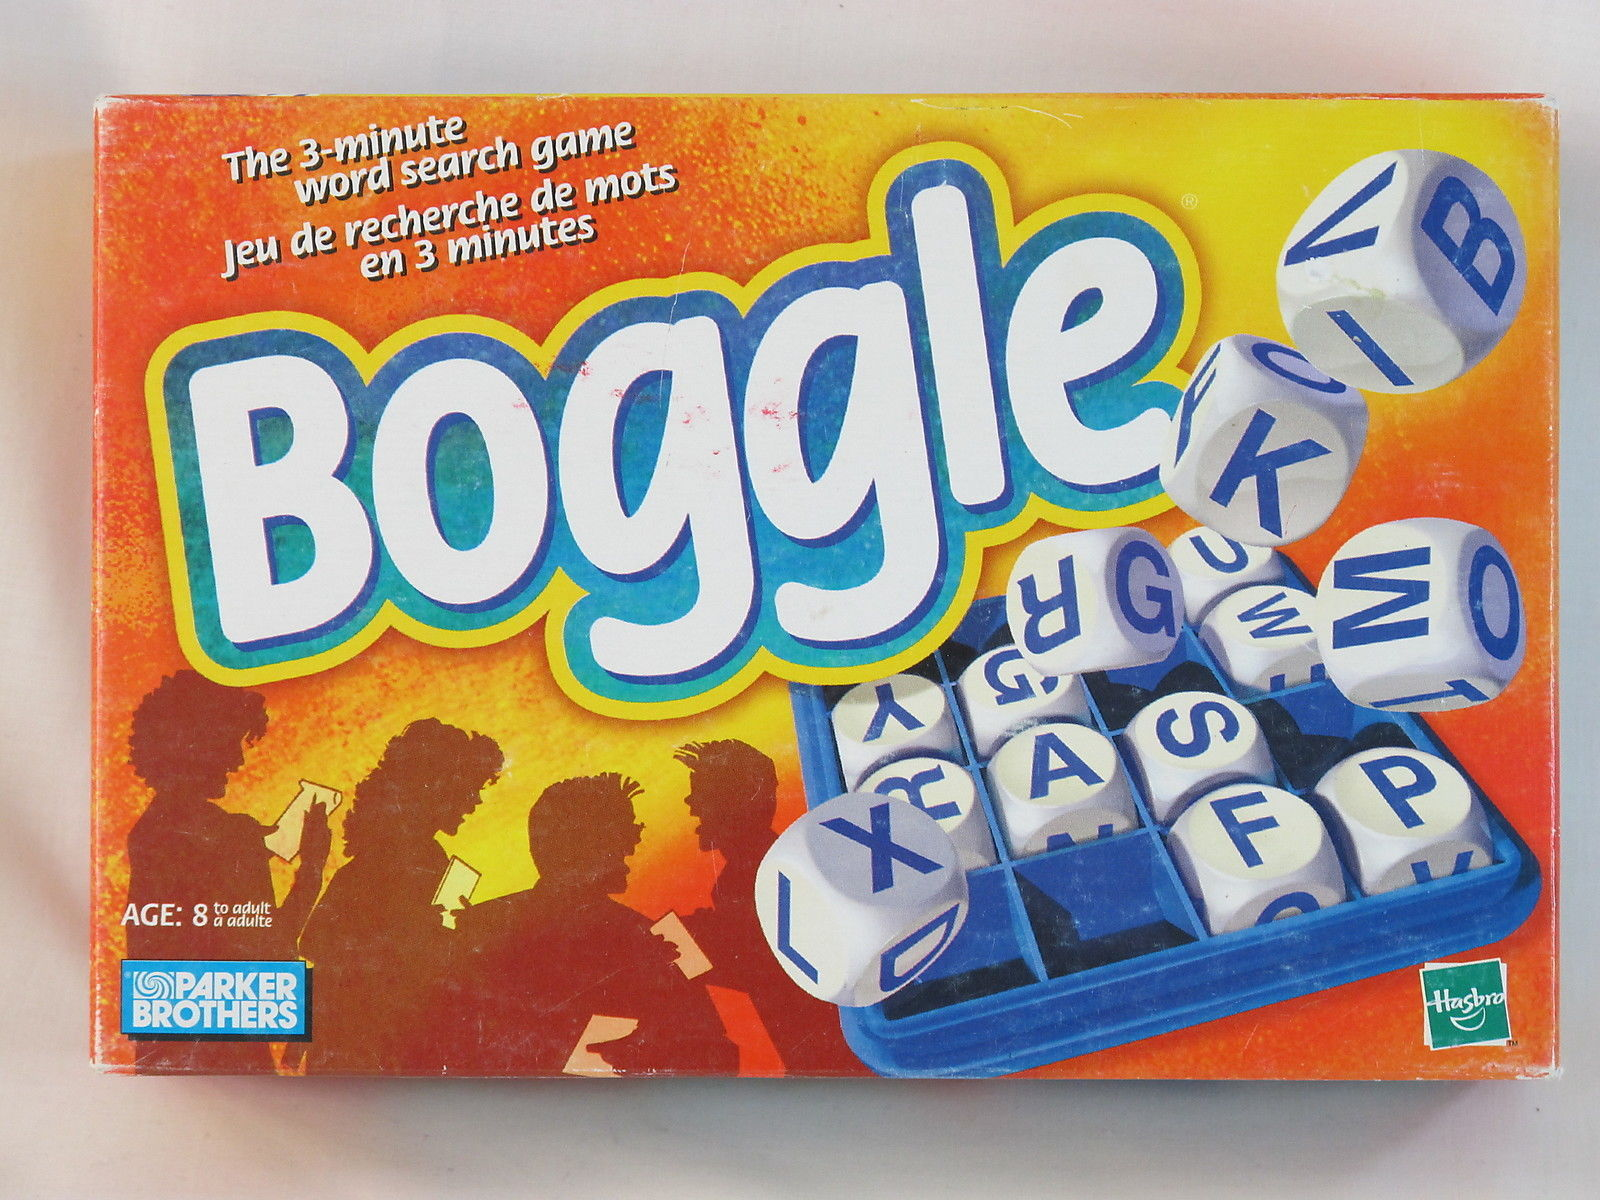 Parker Brothers Boggle Game: 5 listings